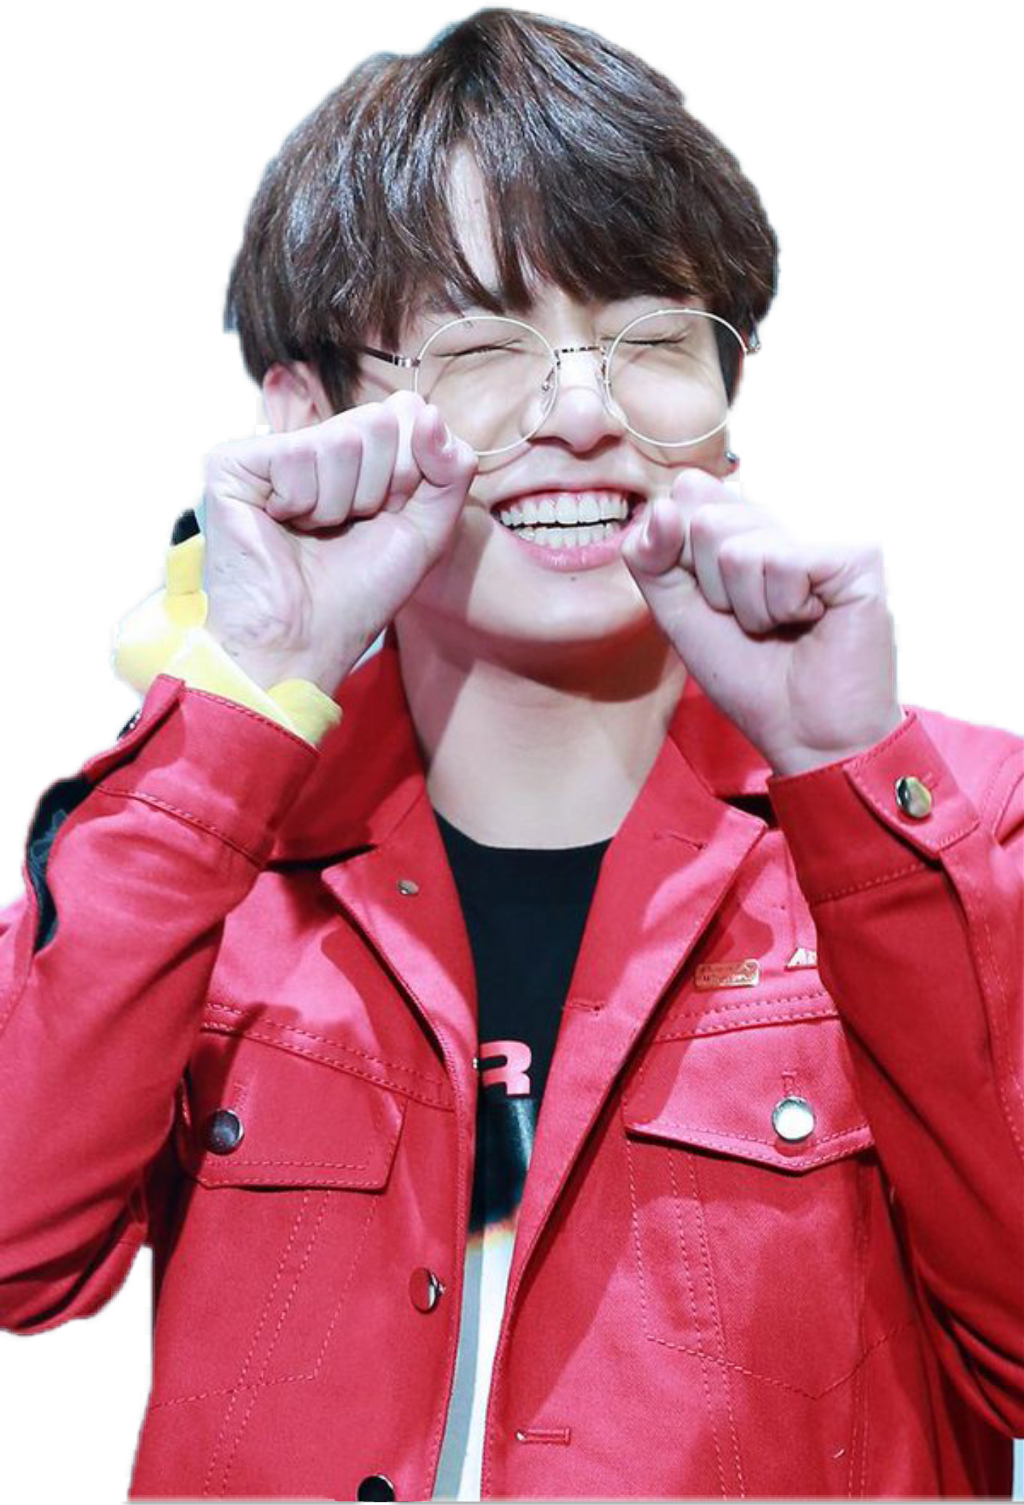 Kpop Boy Bts Jungkook Nose Free Clipart HD PNG Image